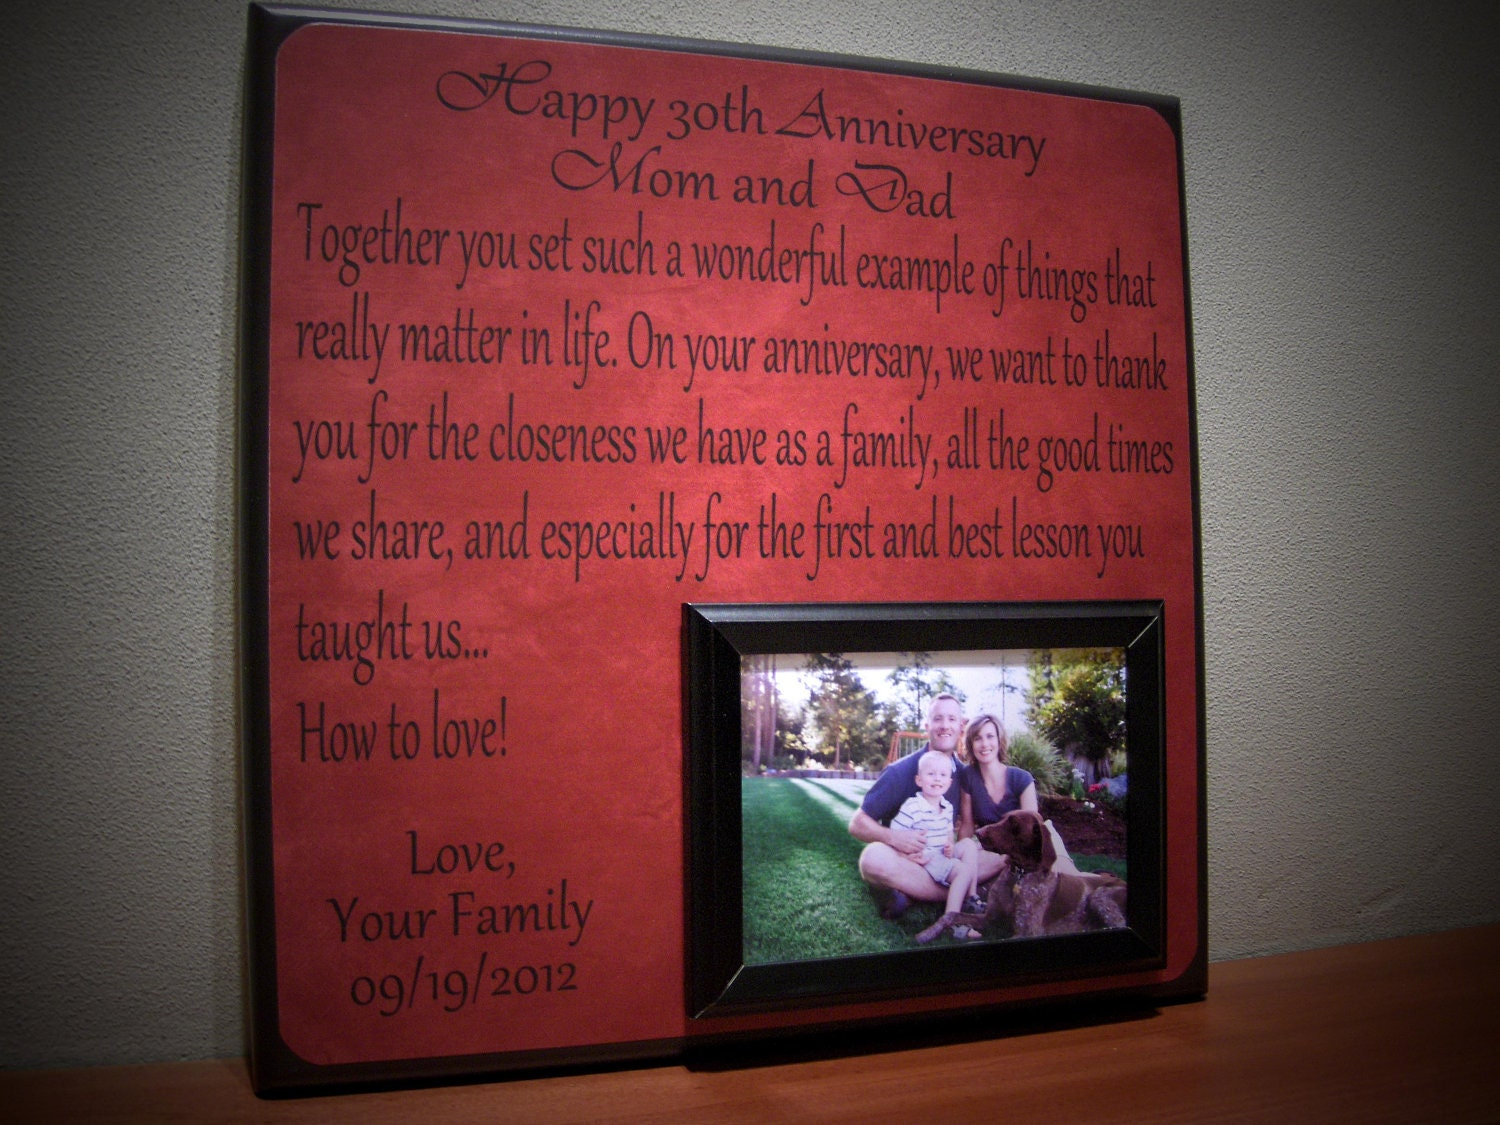 Best Gift For Mom And Dad Wedding Anniversary : ... Anniversary, Mom and Dad, Love, Family, Gift for Parents, Vow Renewal